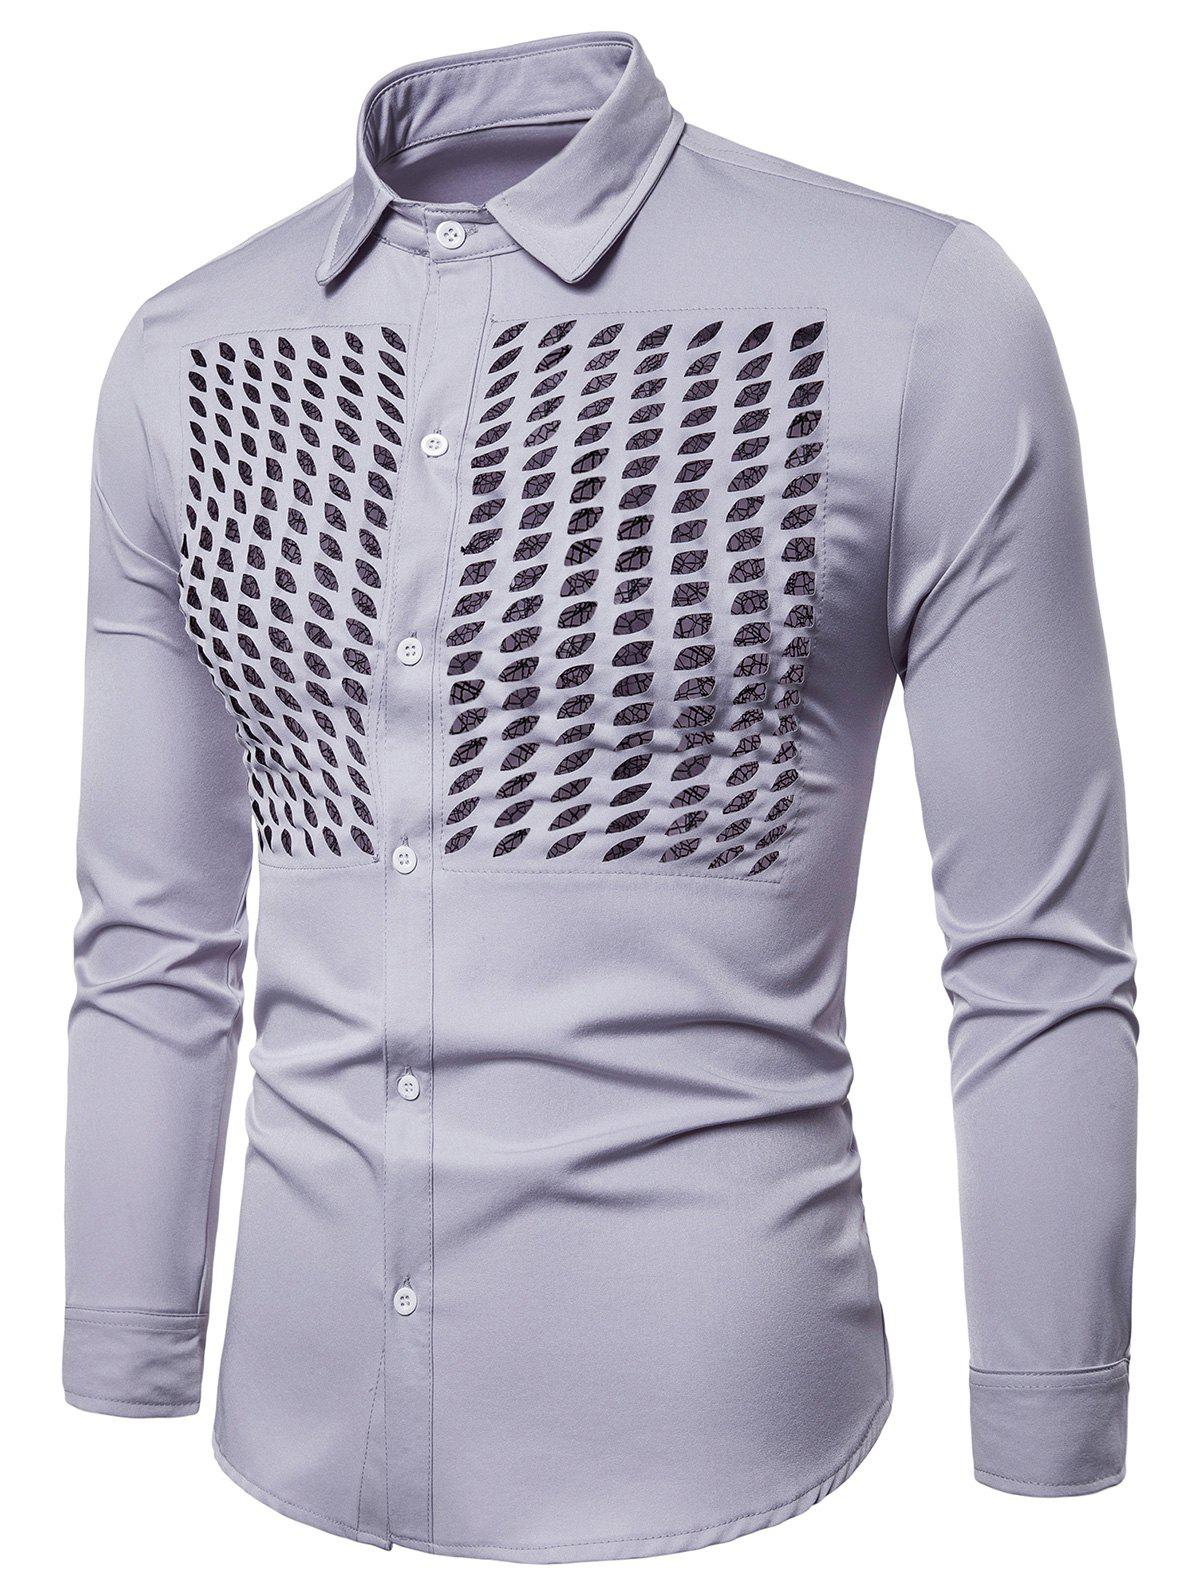 Lace Panel Hollow Out Button Up Shirt - GRAY S